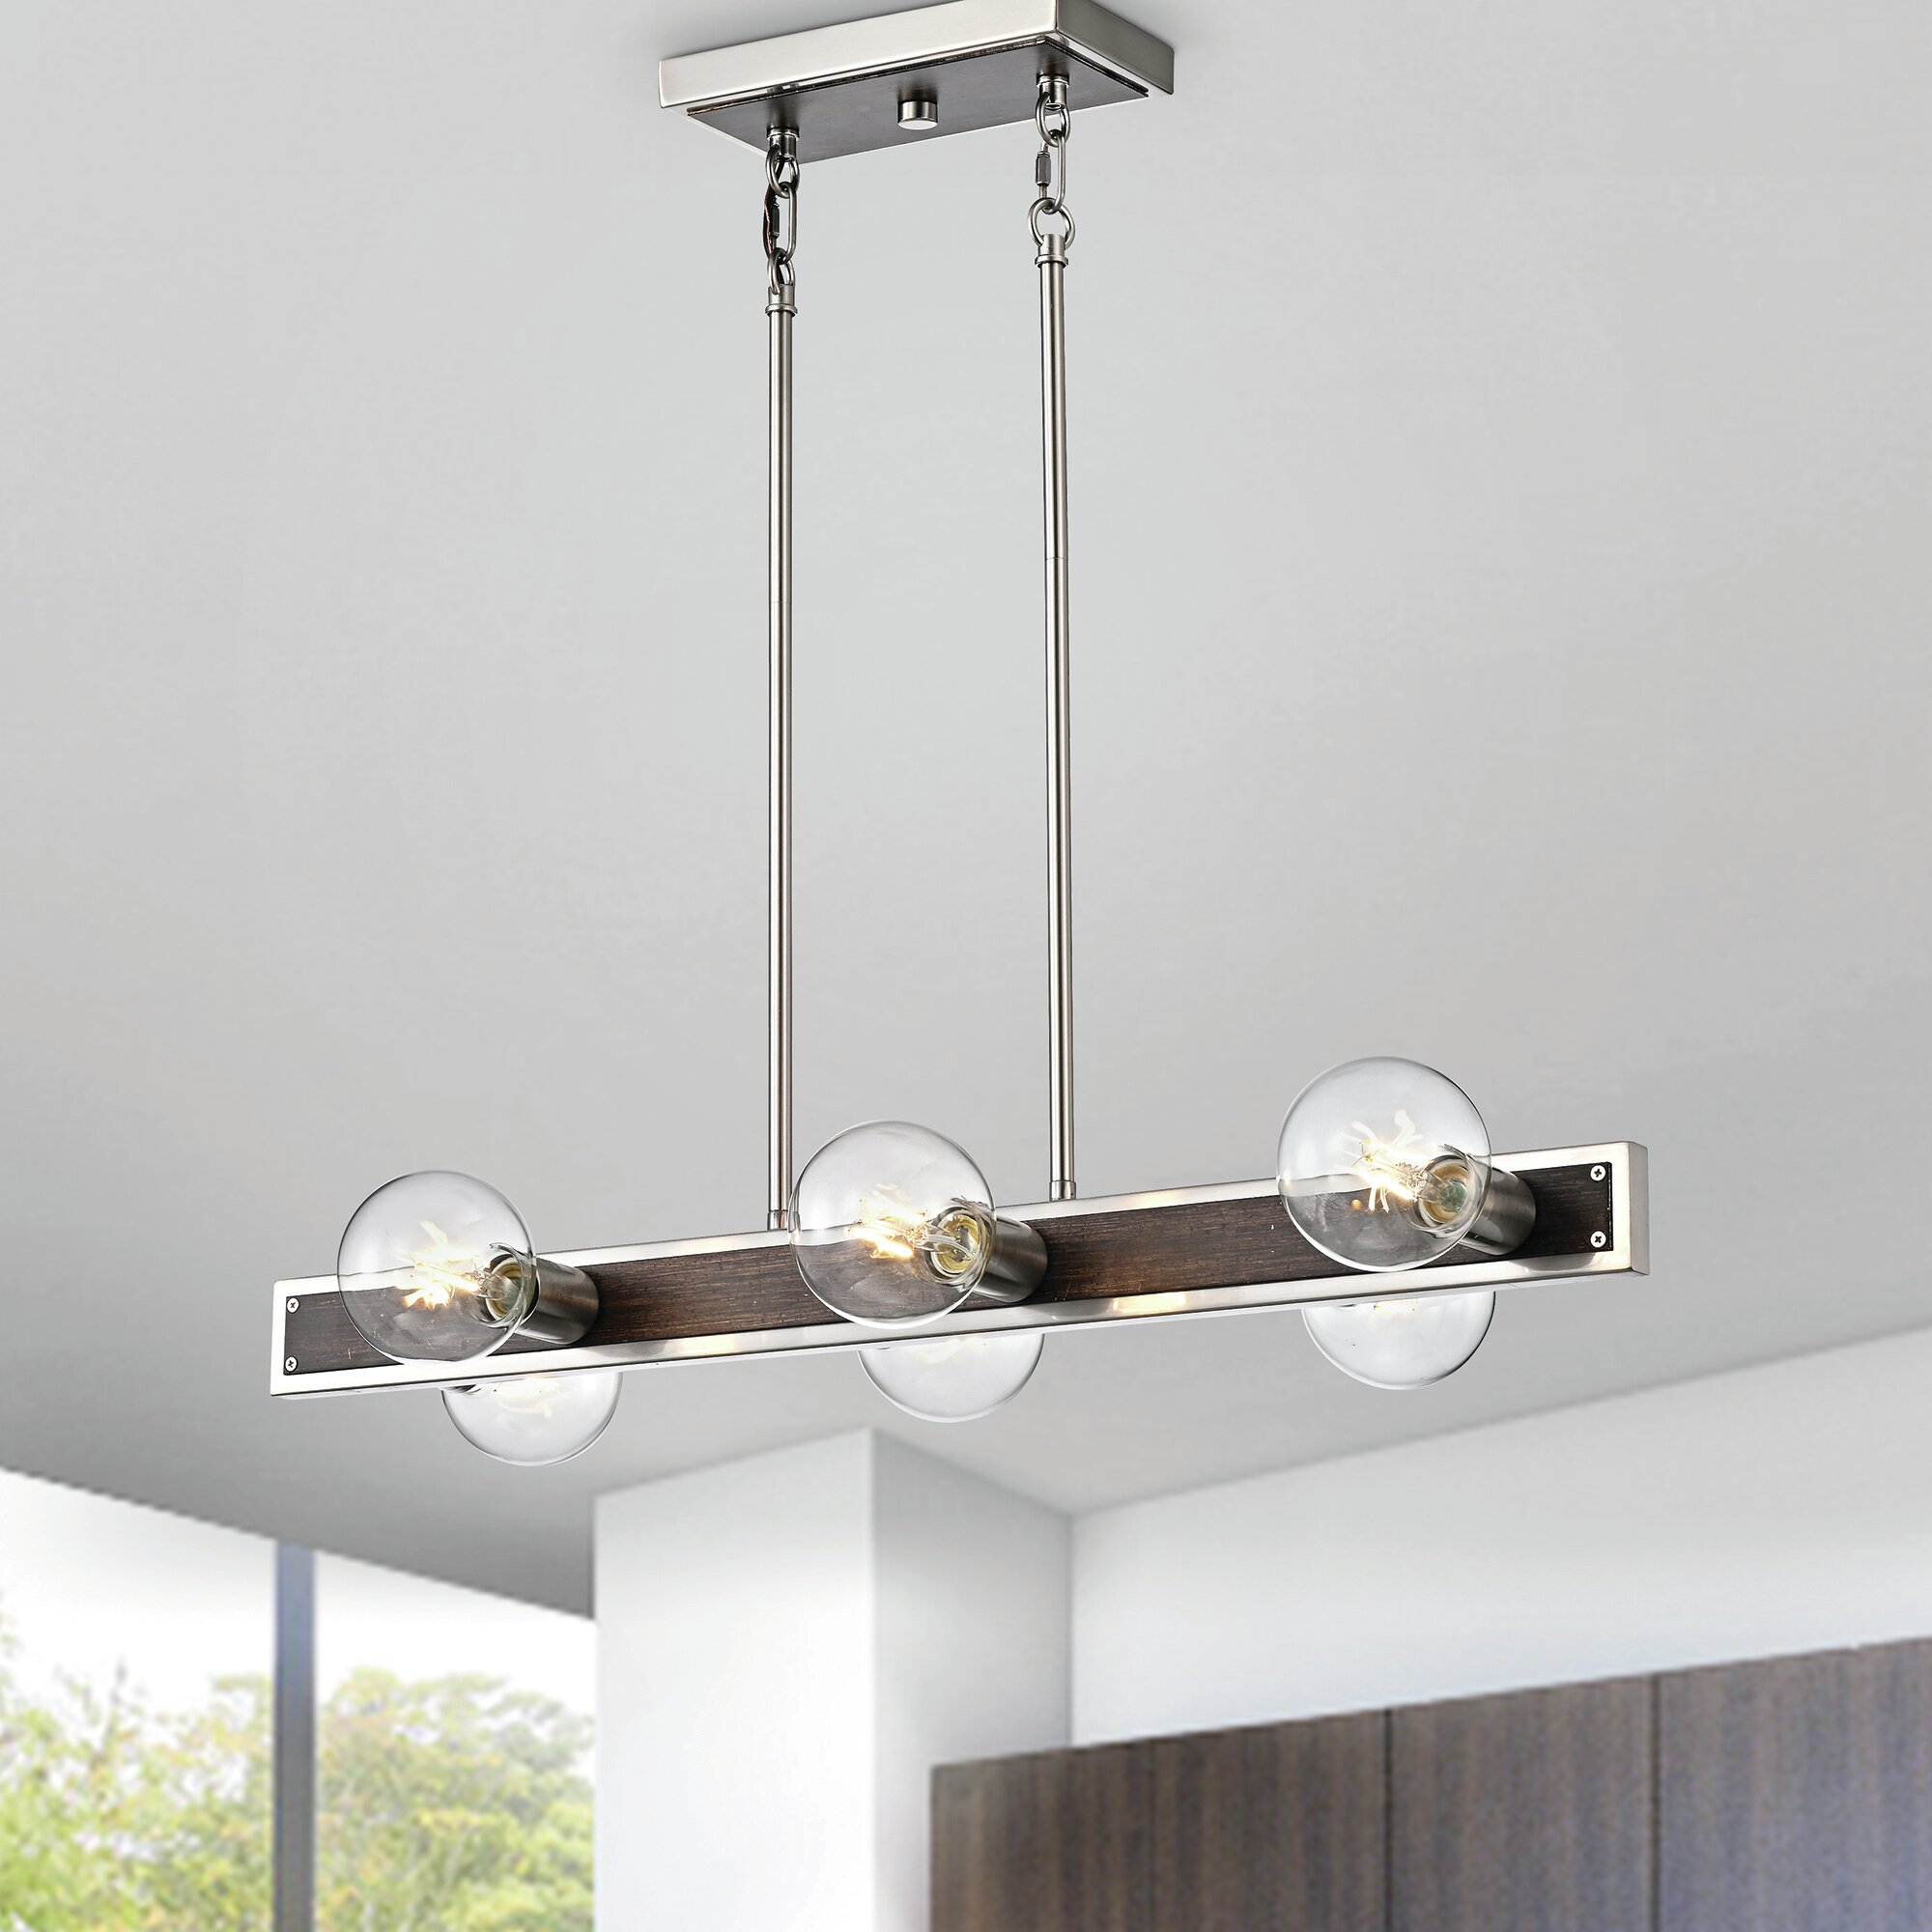 Wrought Studio Brewen 6 Light Kitchen Island Linear Pendant With Wood Accents Wayfair Ca